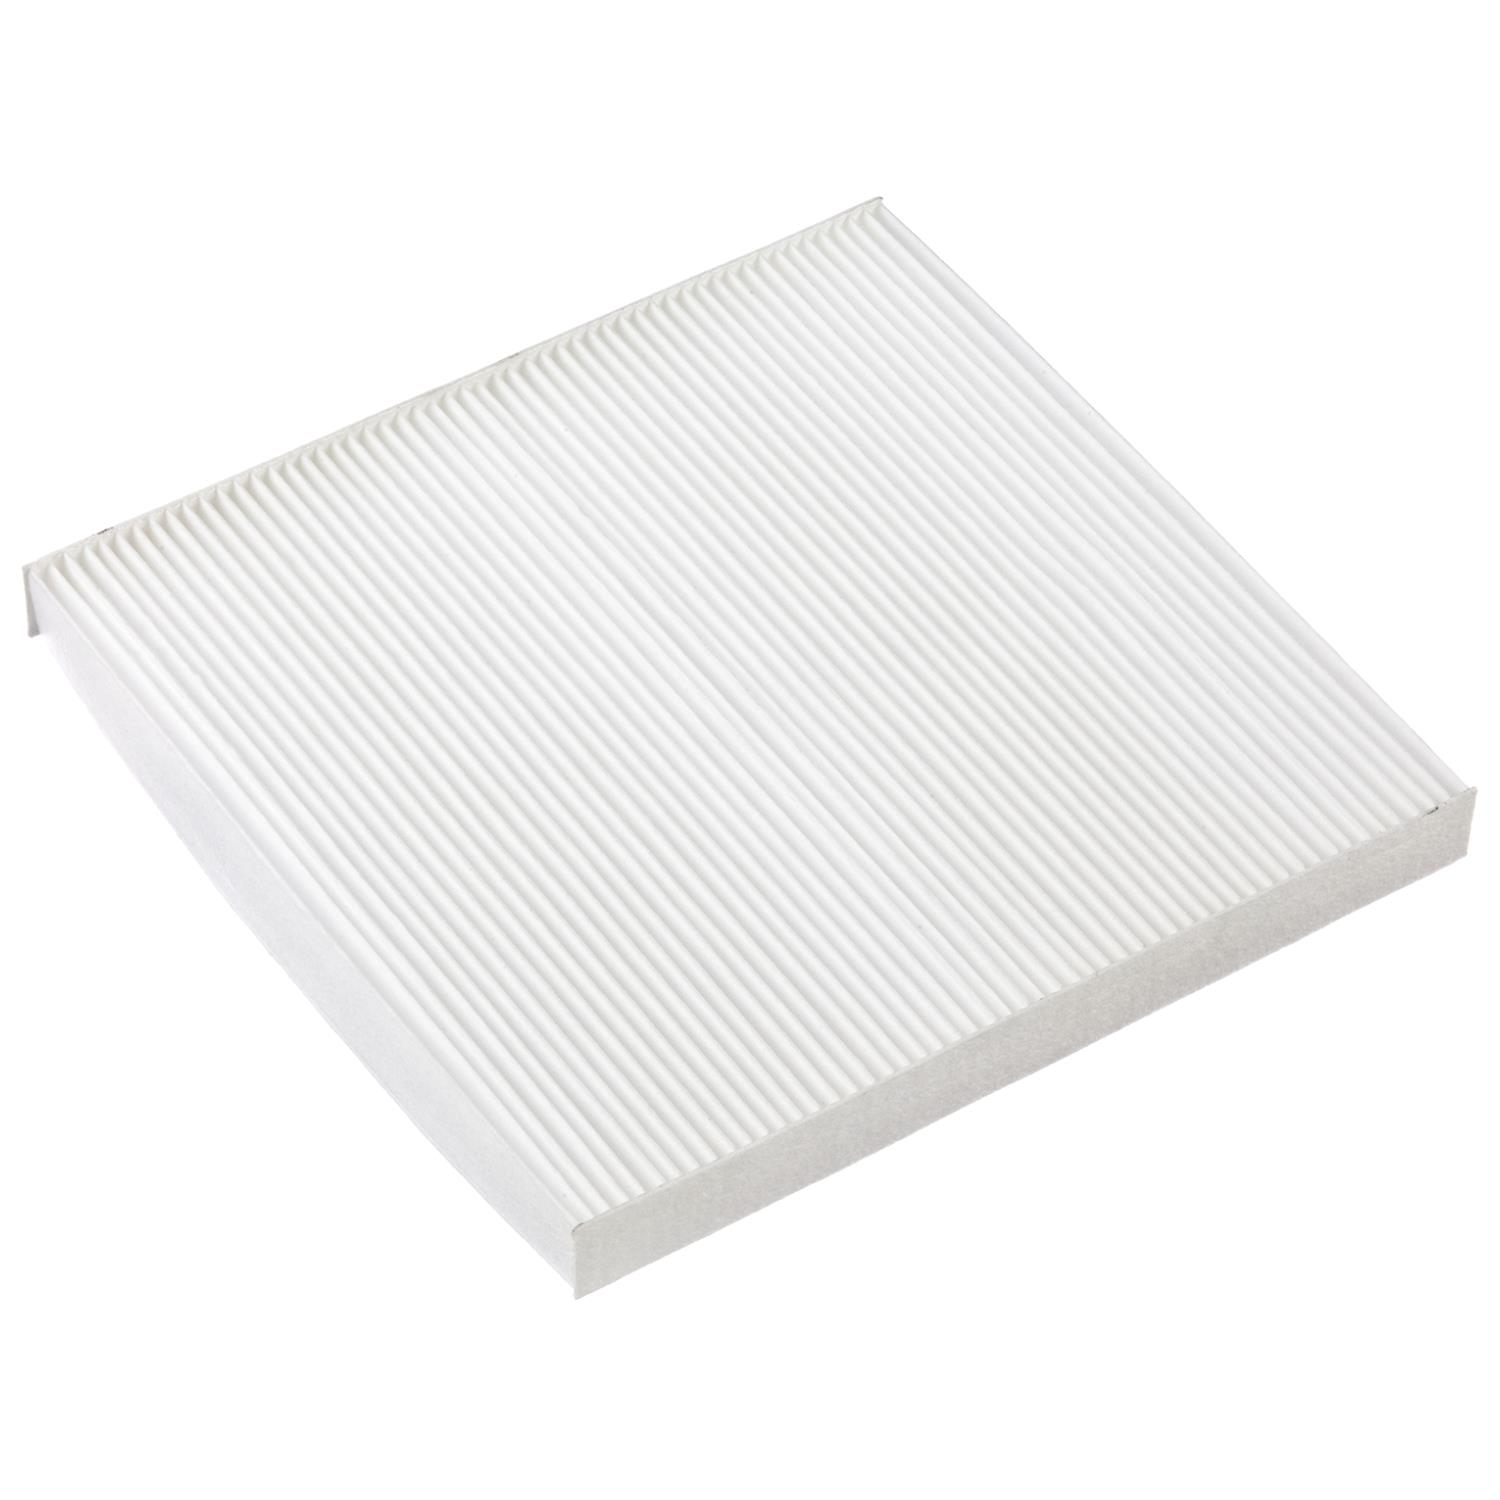 Atp Automotive Cf 206 Replacement Cabin Filter